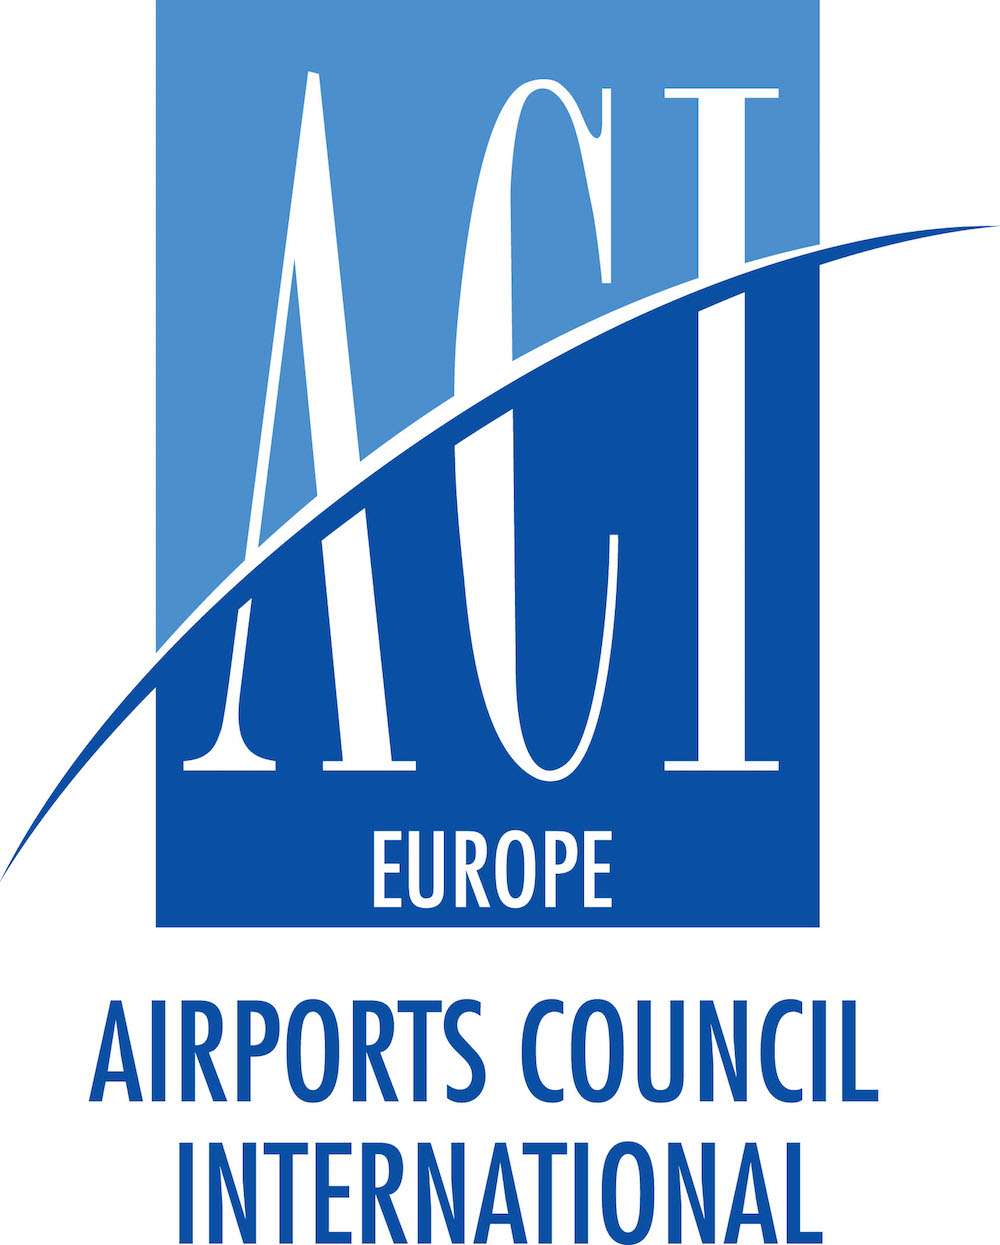 27th ACI EUROPE General Assembly, Congress & Exhibition